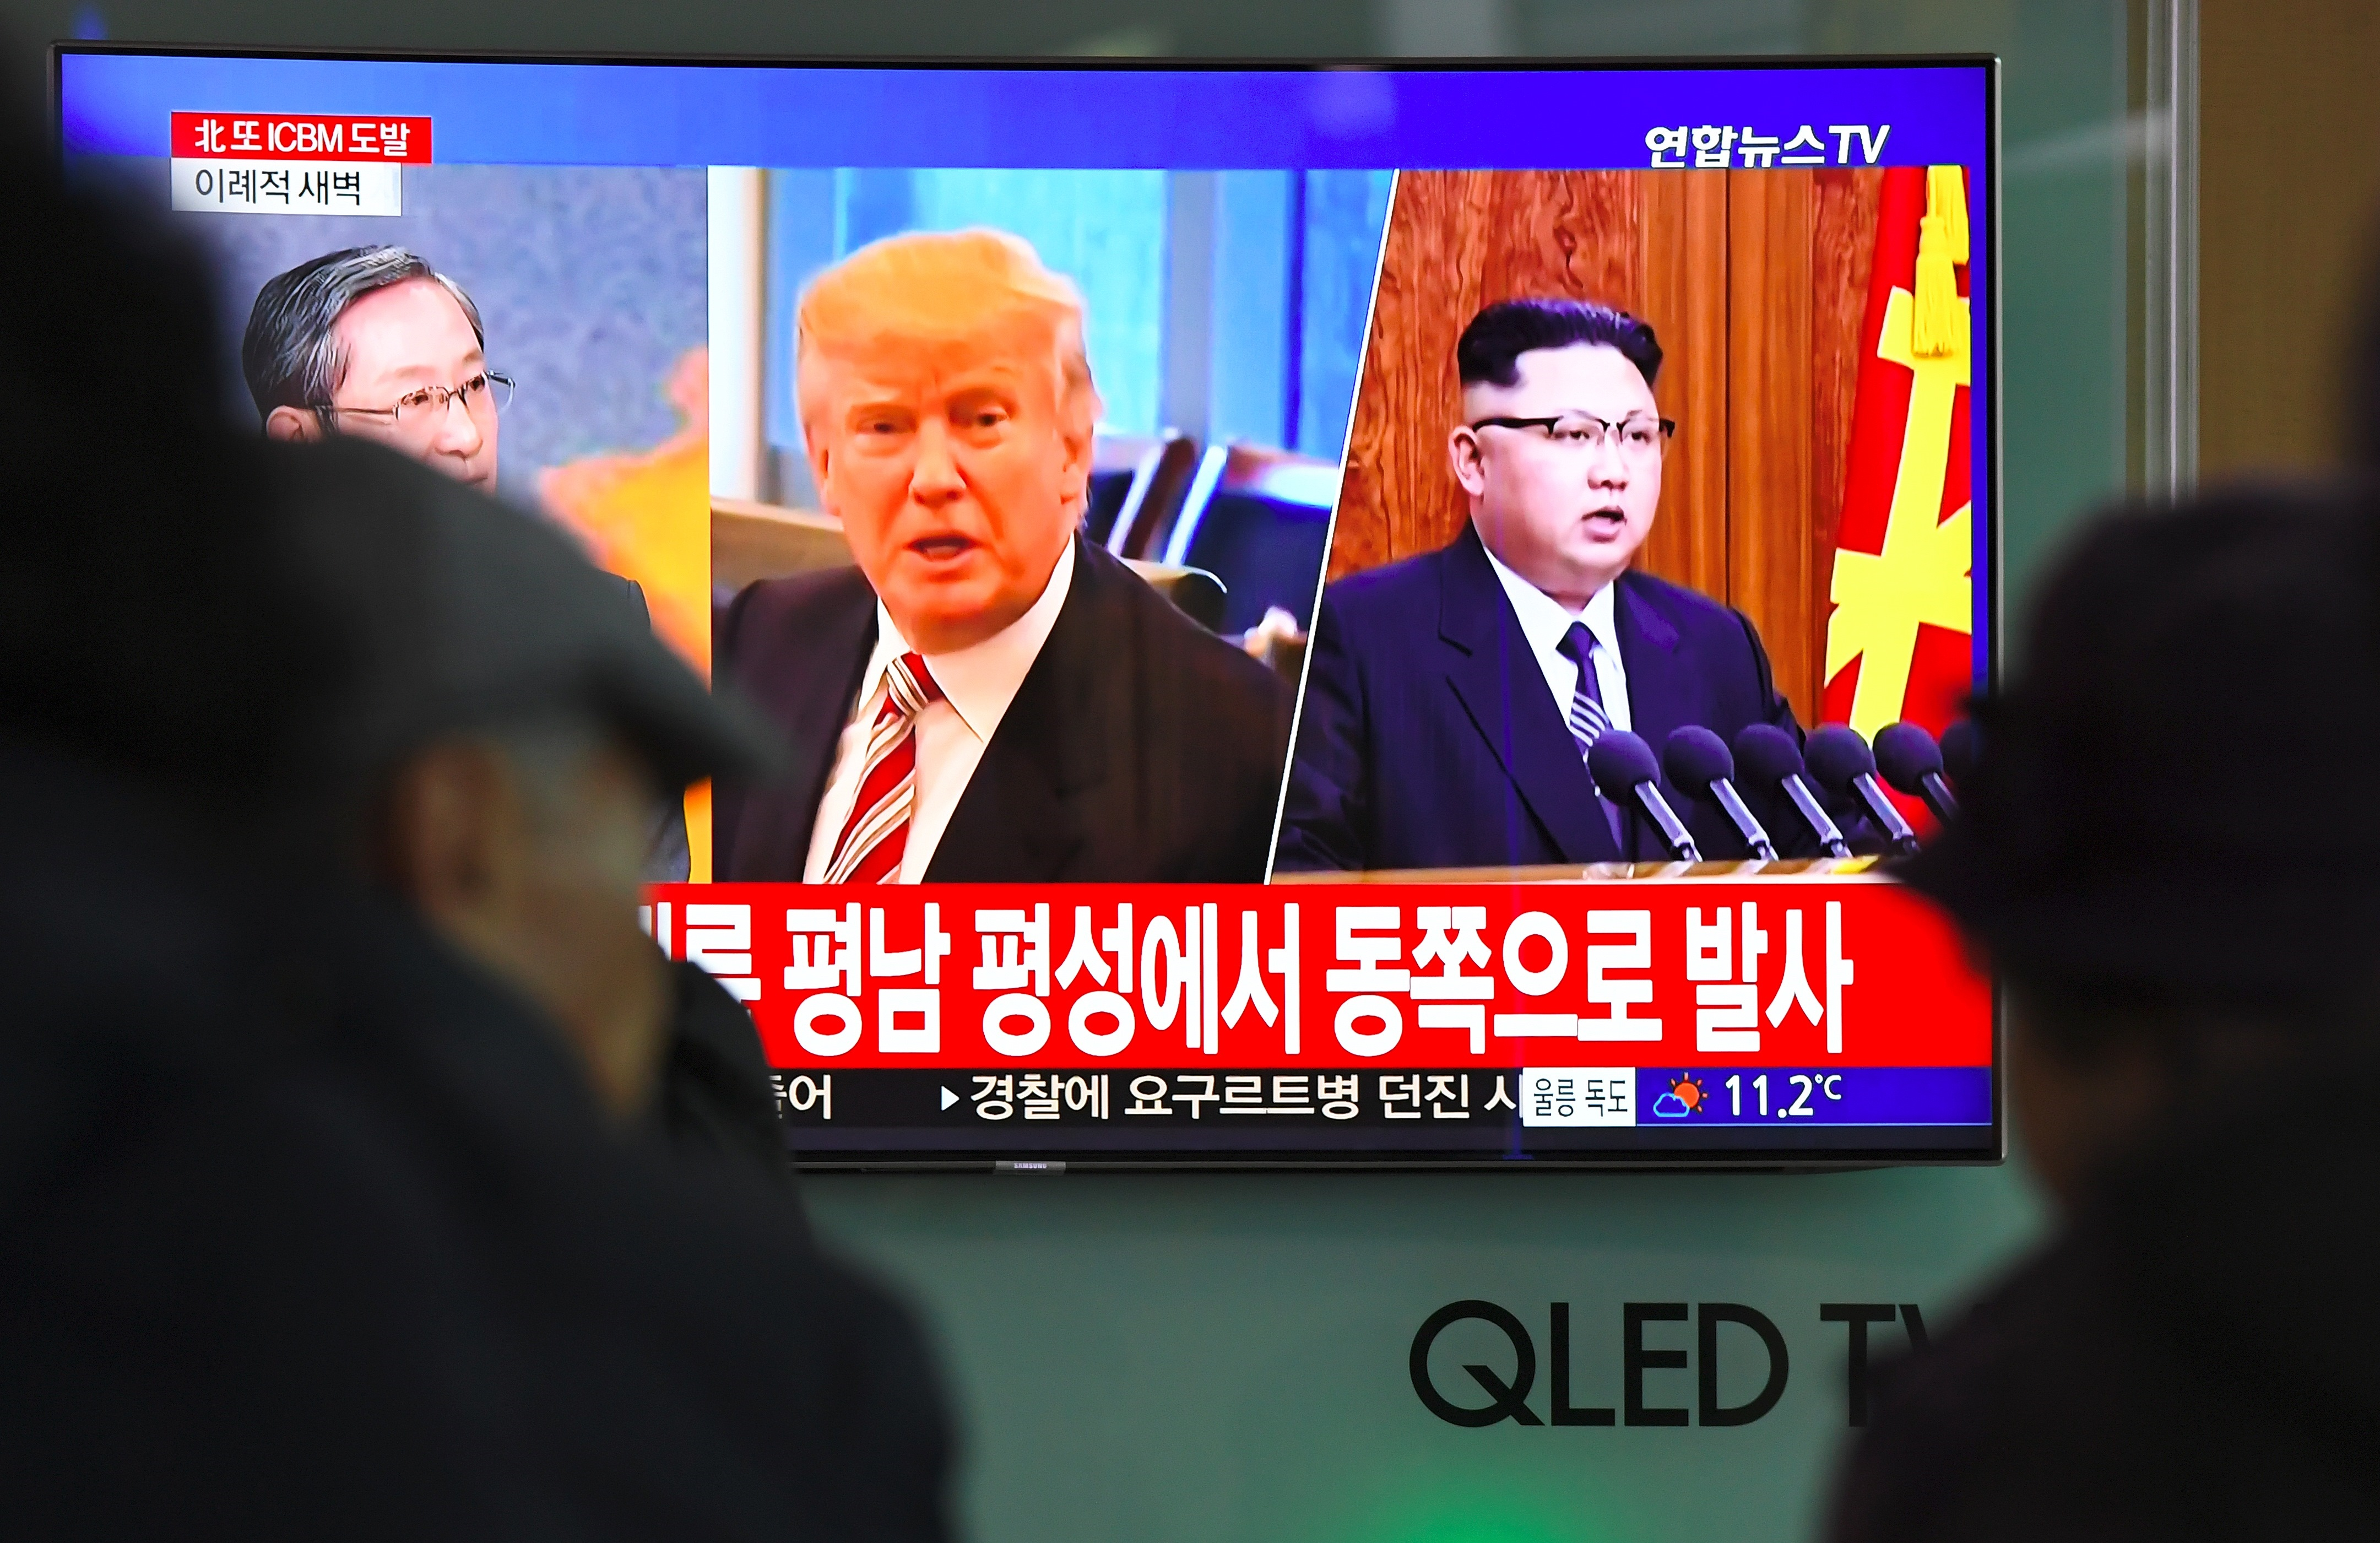 People watch a television news screen showing pictures of US President Donald Trump (C) and North Korean leader Kim Jong-Un (R) at a railway station in Seoul on November 29, 2017. North Korea test fired what appeared to be an intercontinental ballistic missile on November 29, in a major challenge to US President Donald Trump after he slapped fresh sanctions on Pyongyang and declared it a state sponsor of terrorism. JUNG YEON-JE/AFP/Getty Images